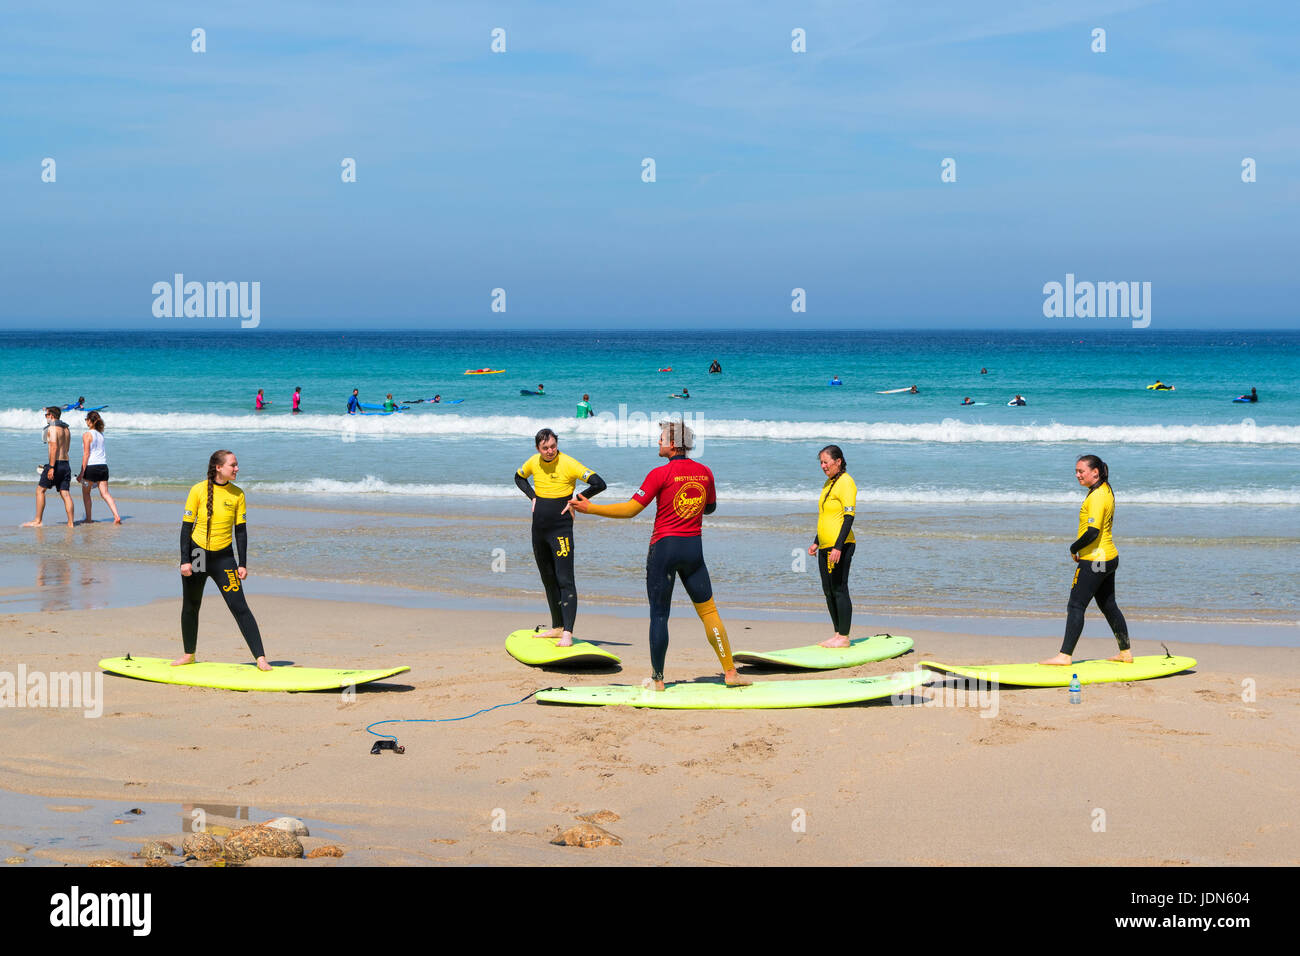 surfing lessons on the beach at sennen cove in cornwall, england, uk. - Stock Image